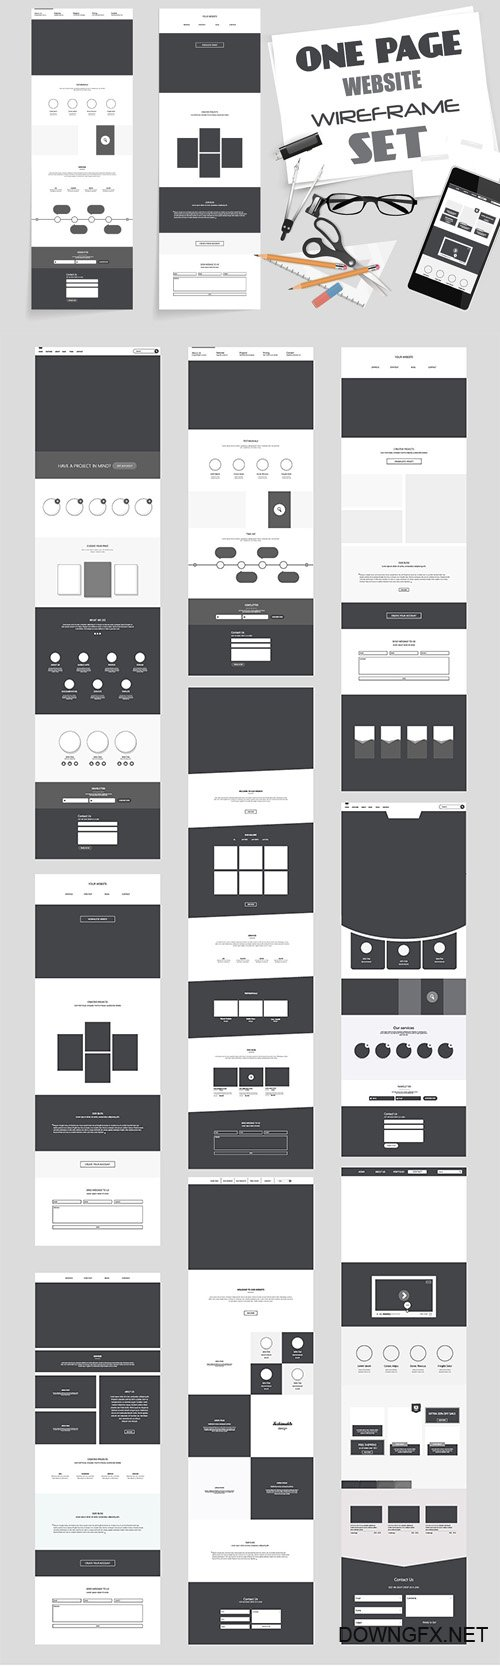 One Page Website Wireframe Kit. #3 - CM 1485846